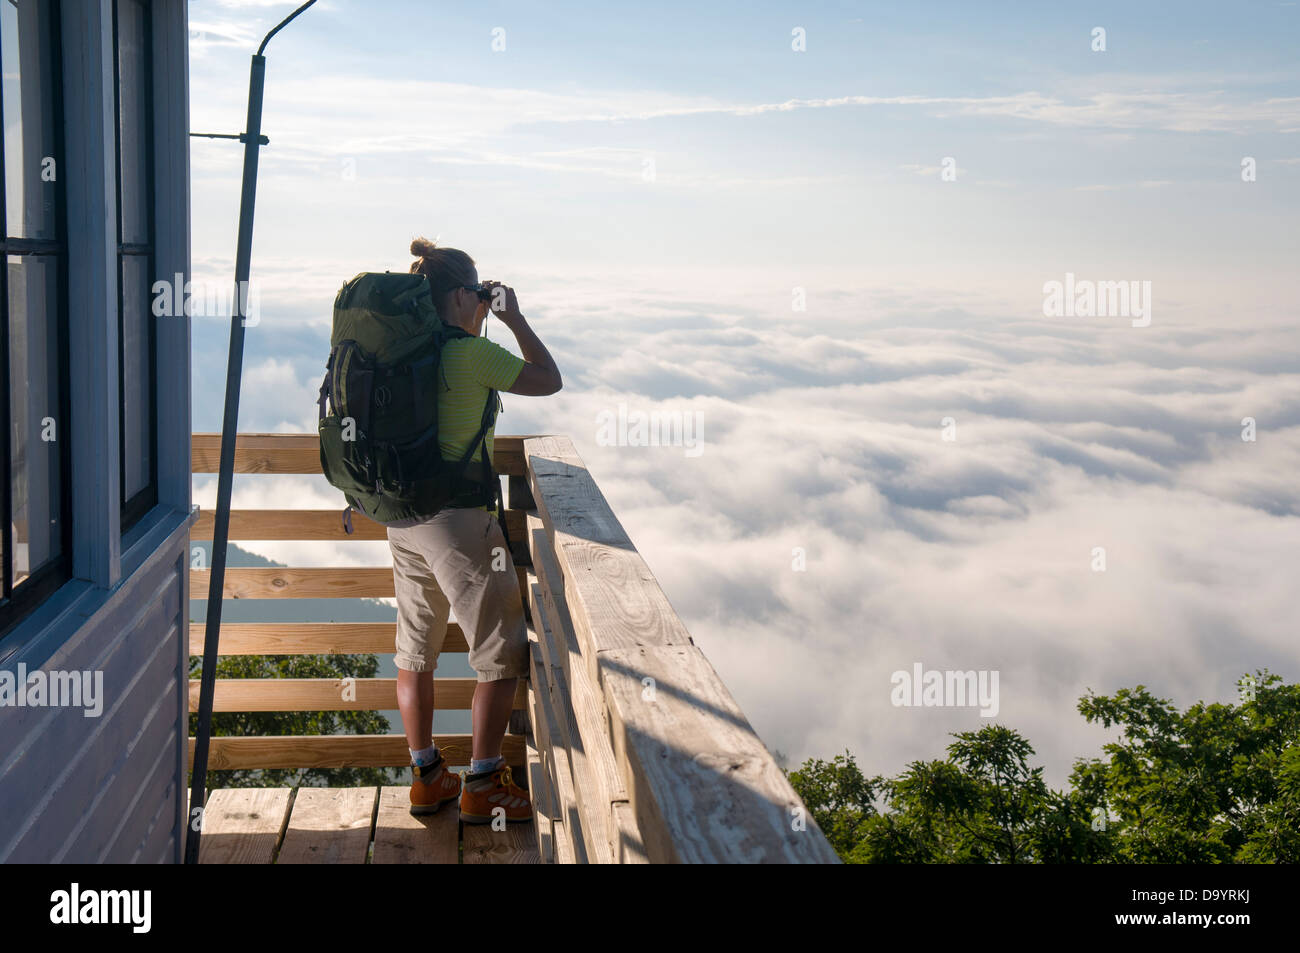 A woman backpacker looking through binoculars from the Green Knob Firetower, Pisgah National Forest, Asheville, Stock Photo